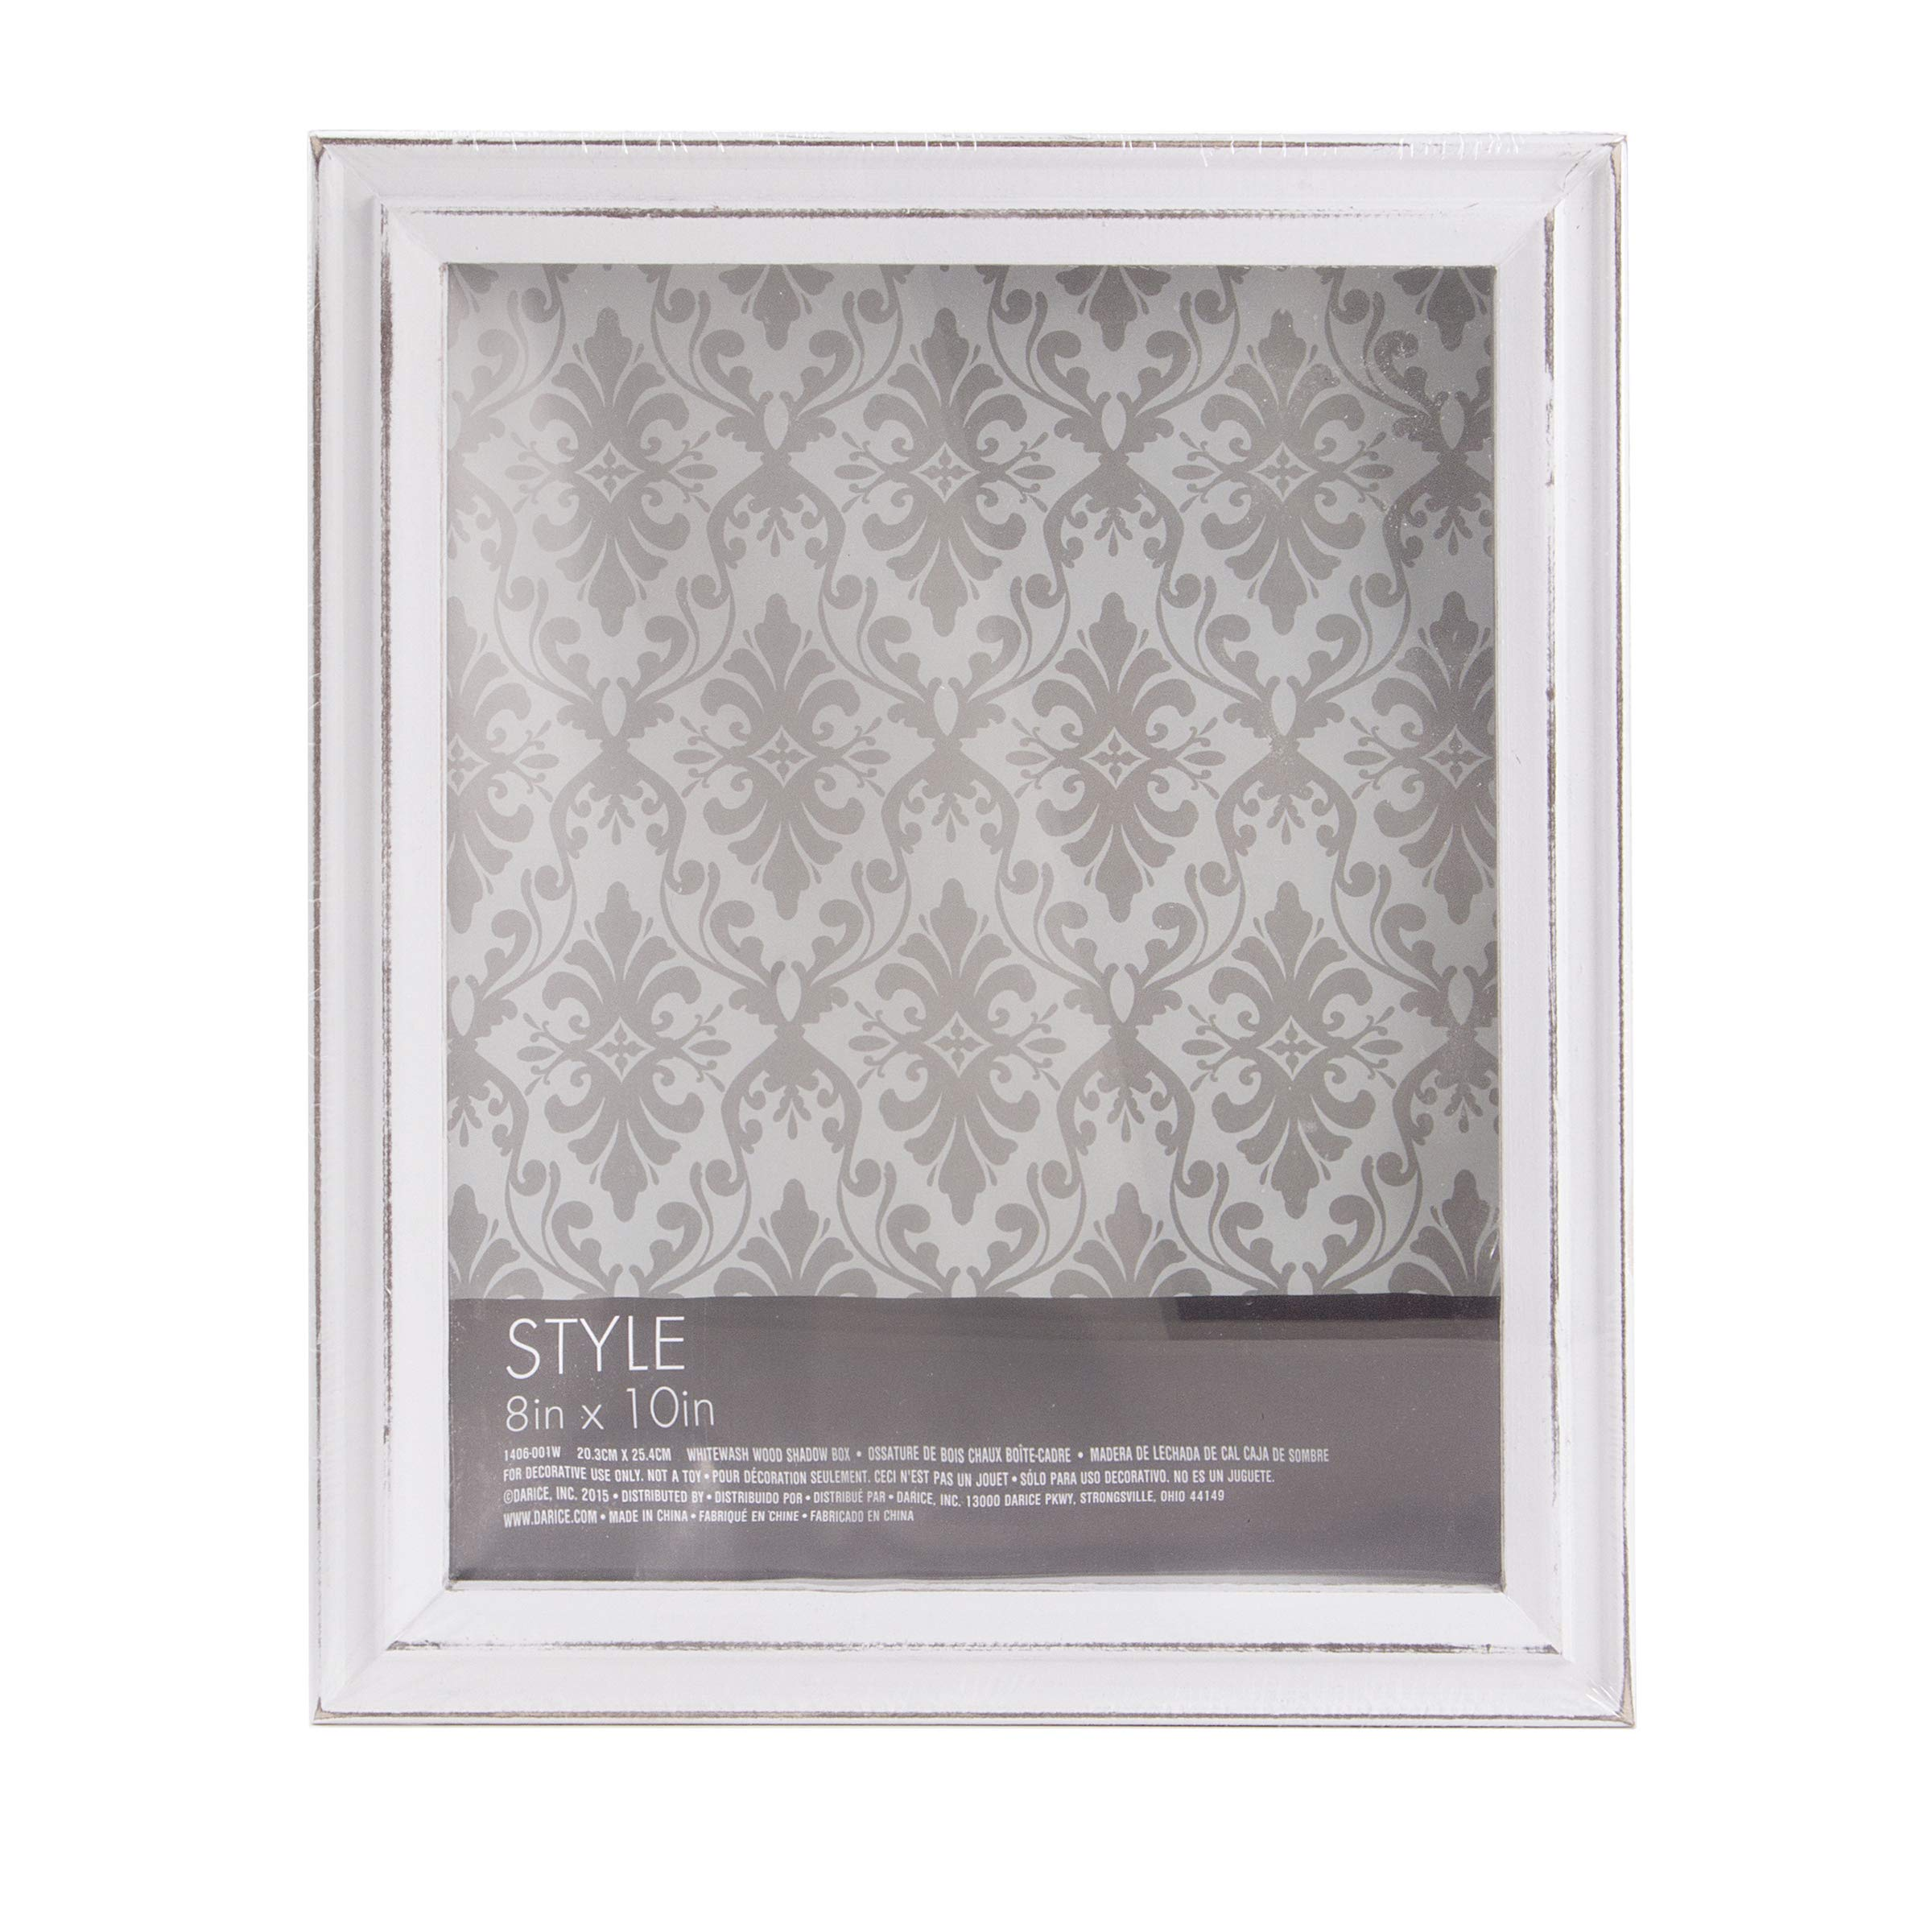 Darice White Shadow Box Frame: Whitewashed Wood, 8 x 10 inches by Darice